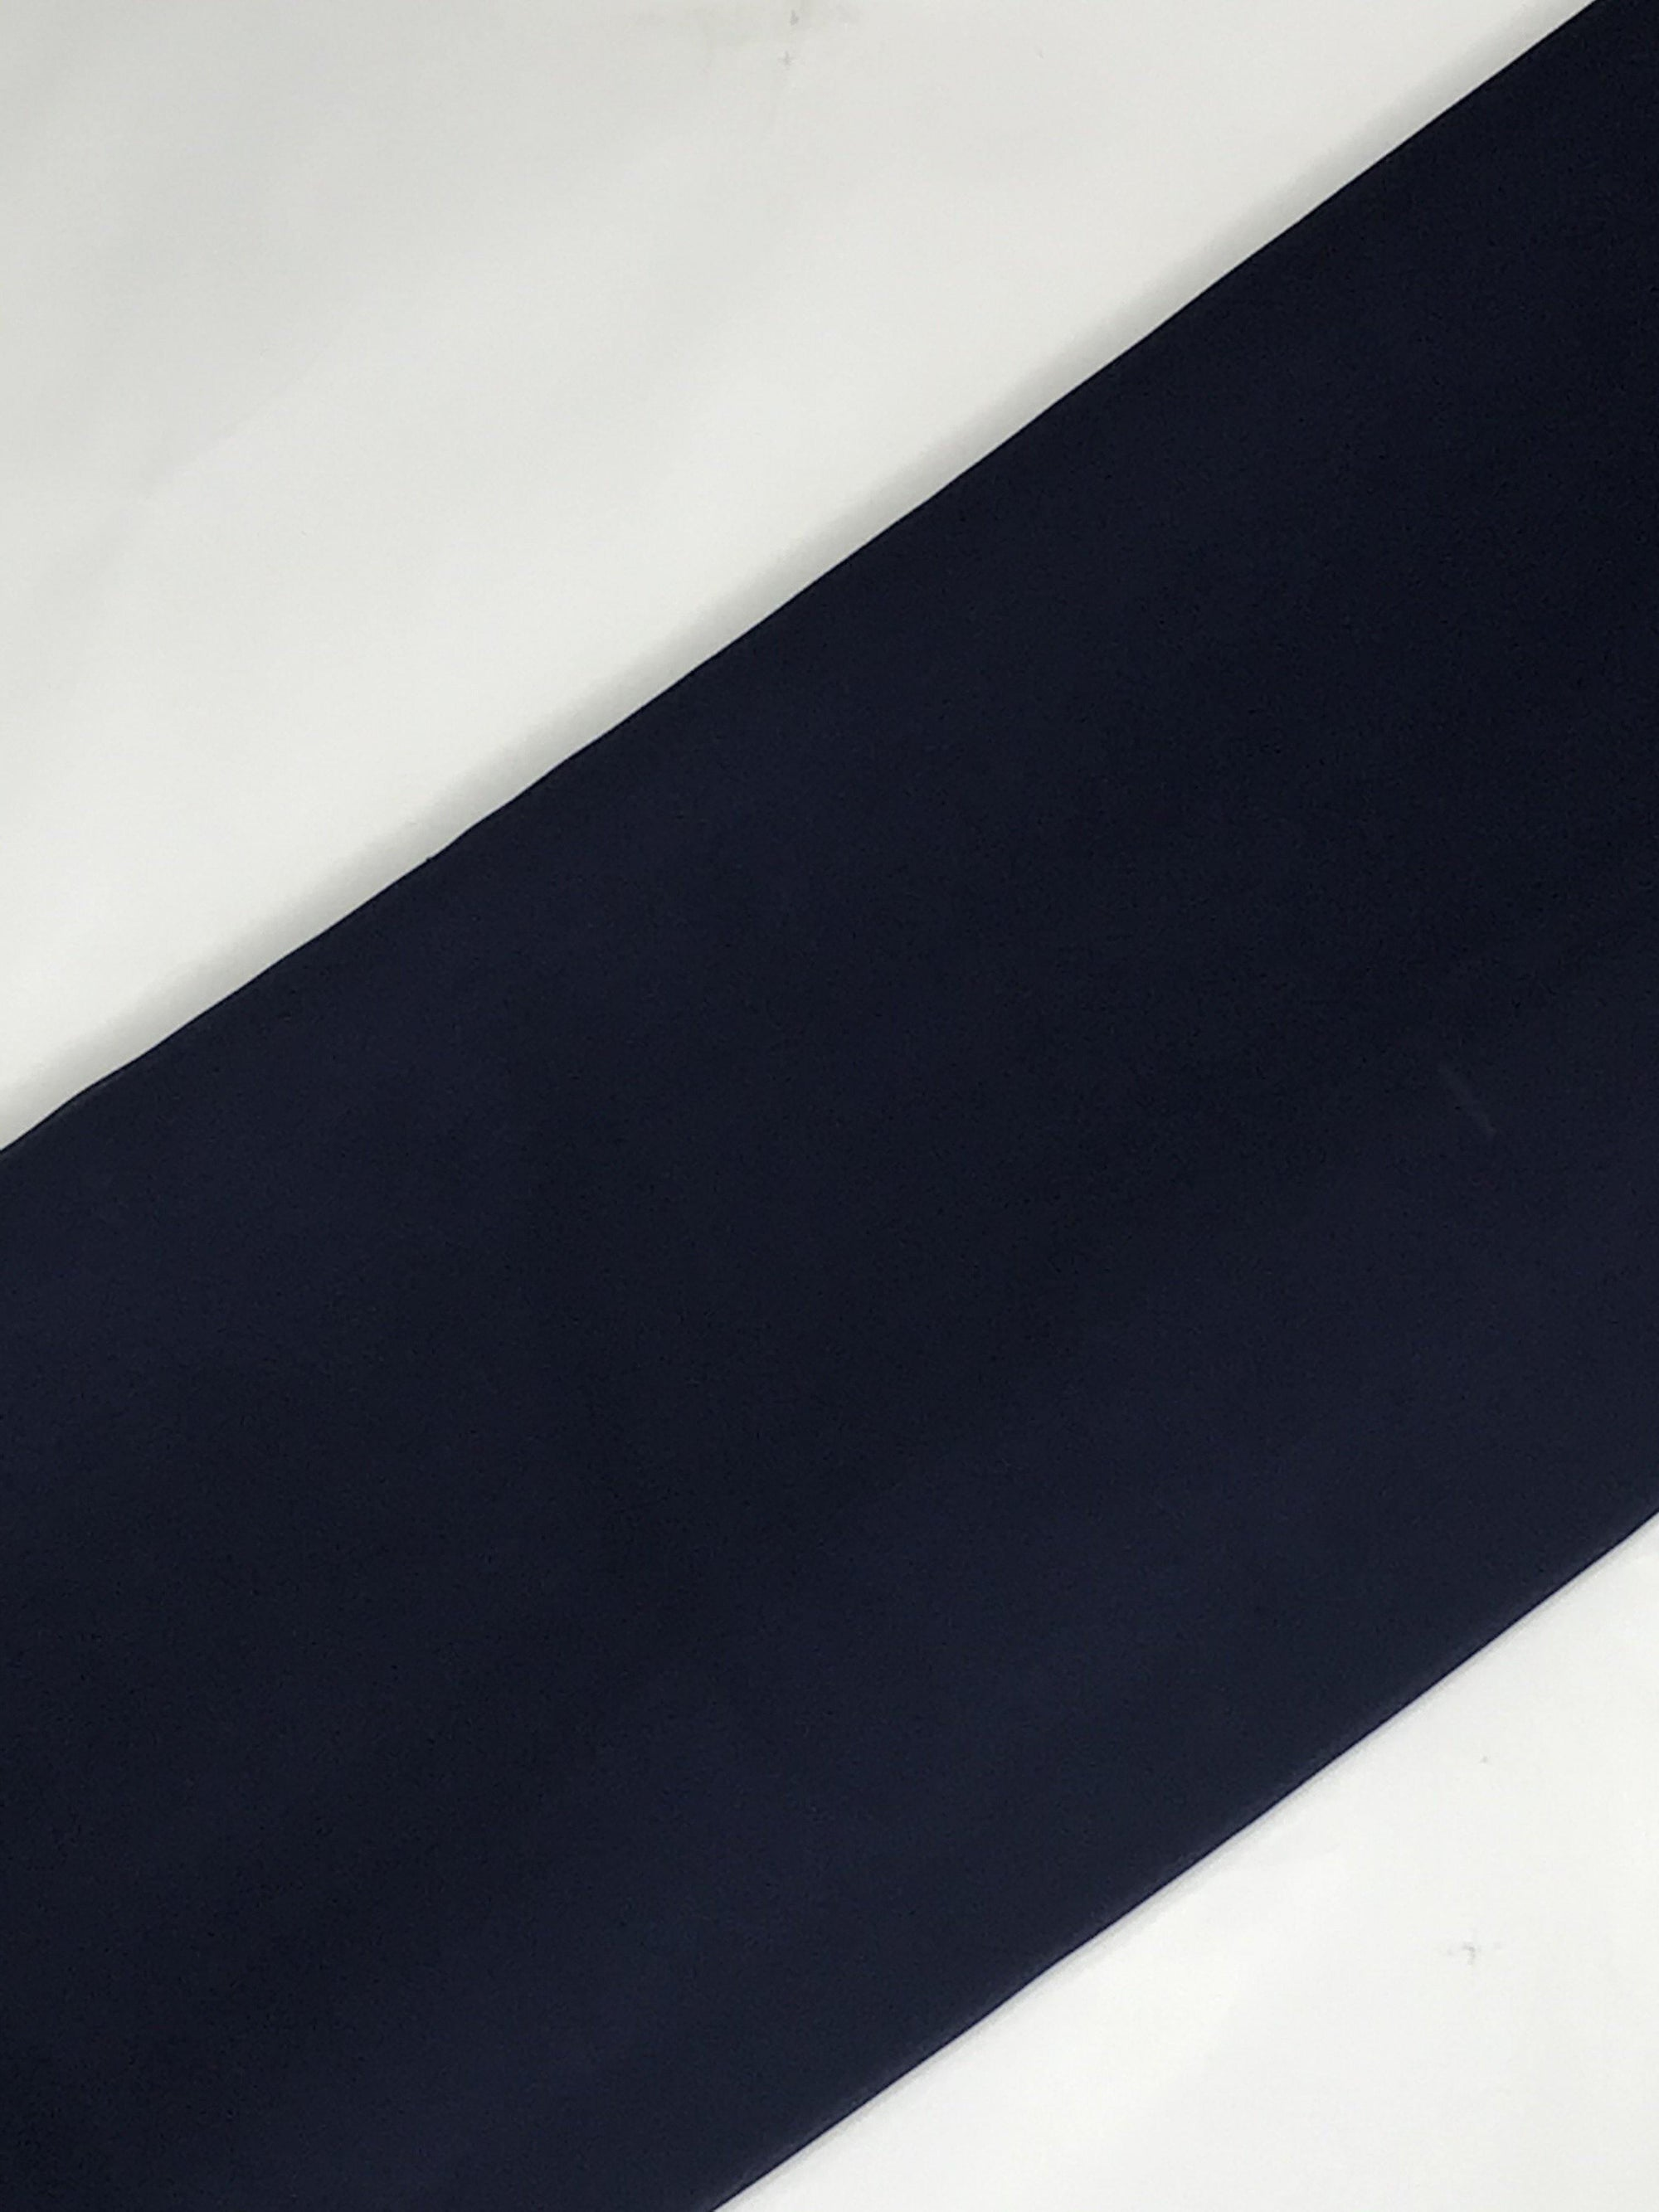 Navy Blue Georgette Plain Dyed Fabric (Width - 58 inches)